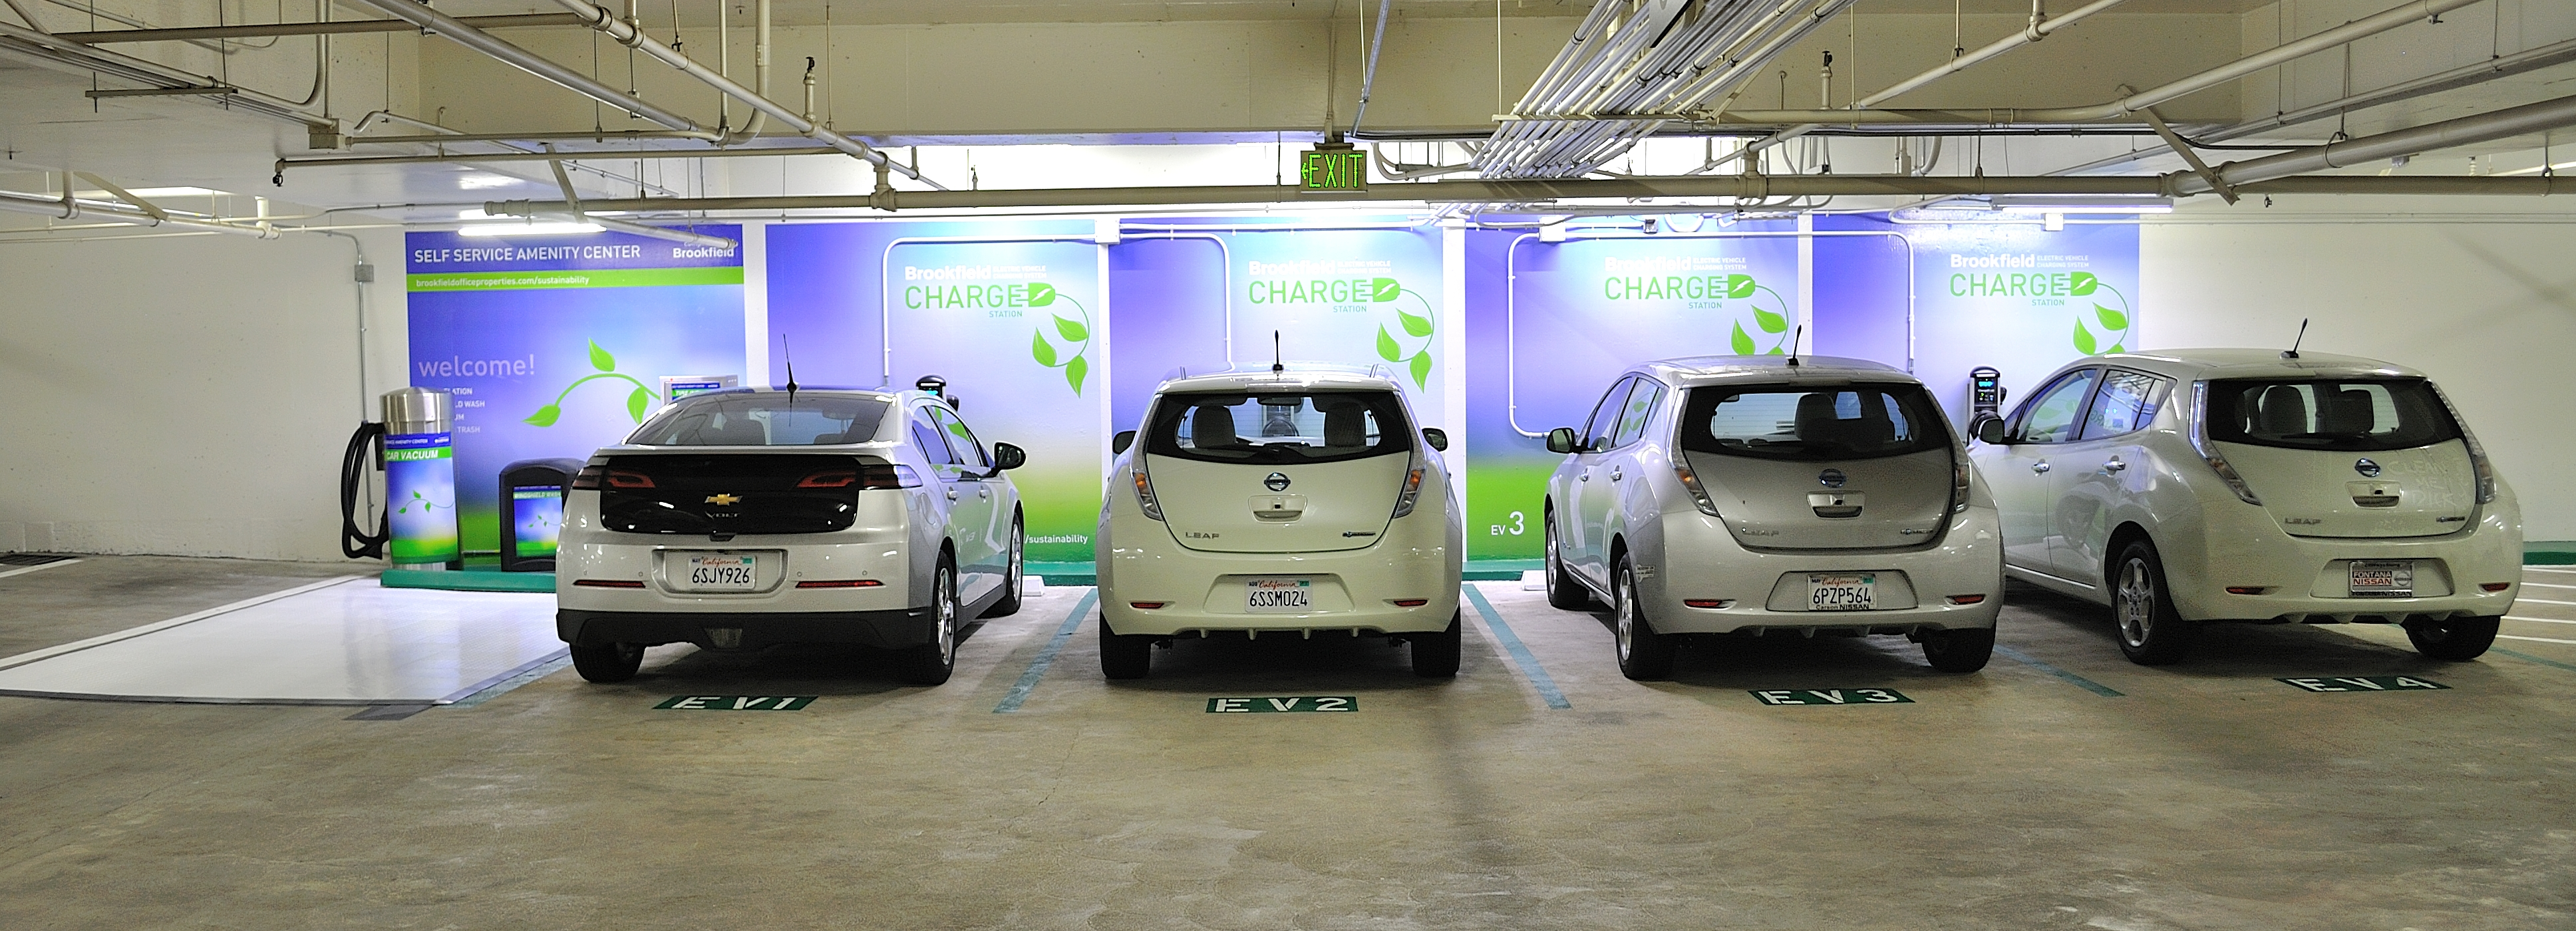 Bank of American charging station for electric vehicles